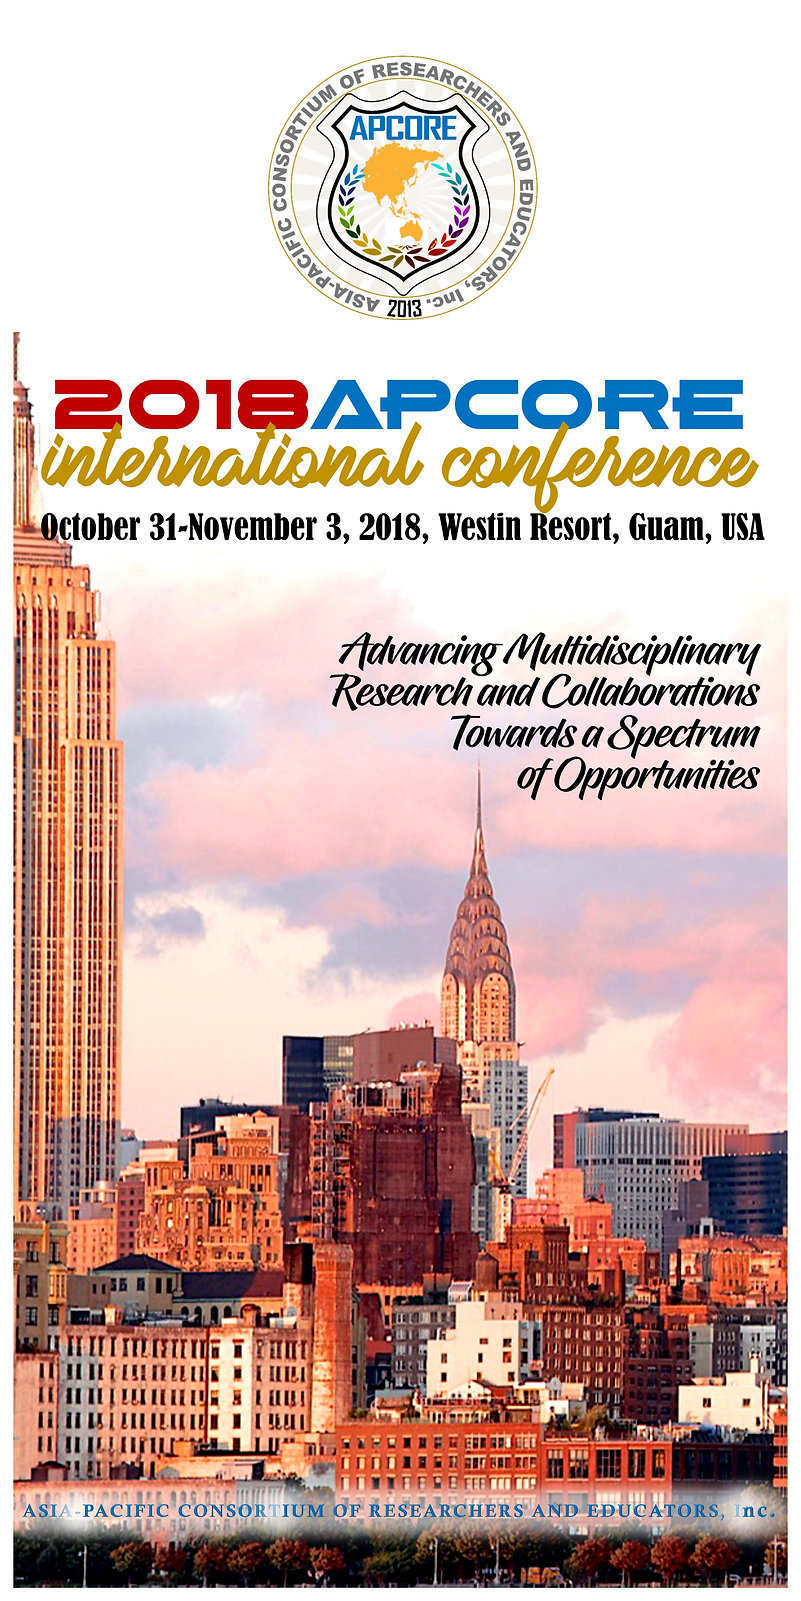 2018APCoRE International Conference (2.5